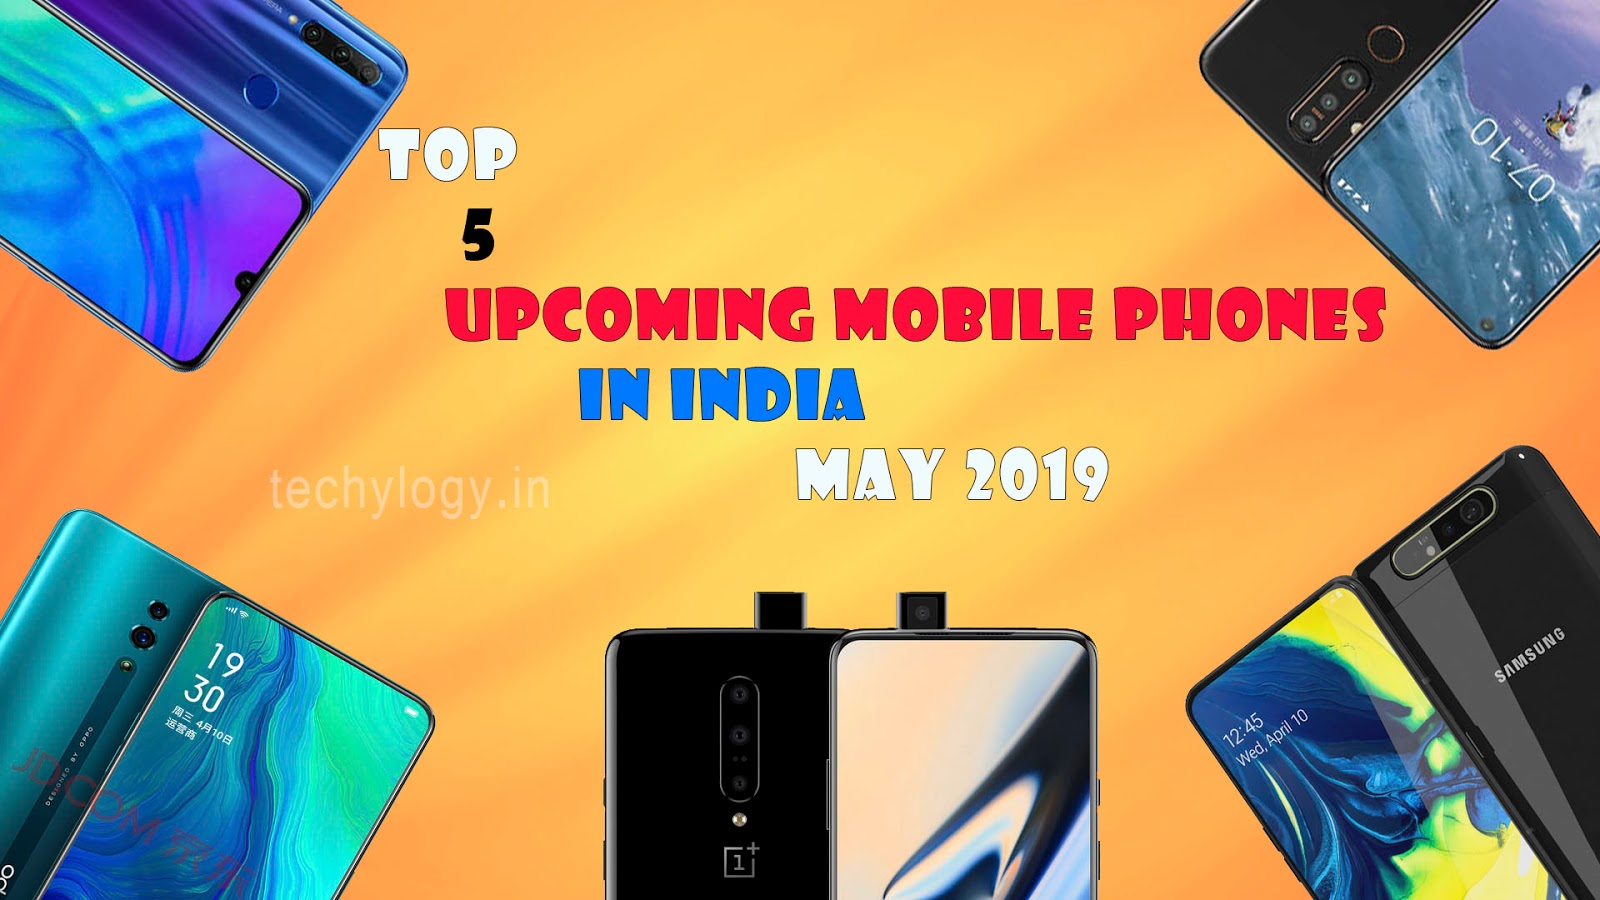 a22bac86da7 Top 5 Upcoming Mobiles Phones In India May 2019-Techylogy ...